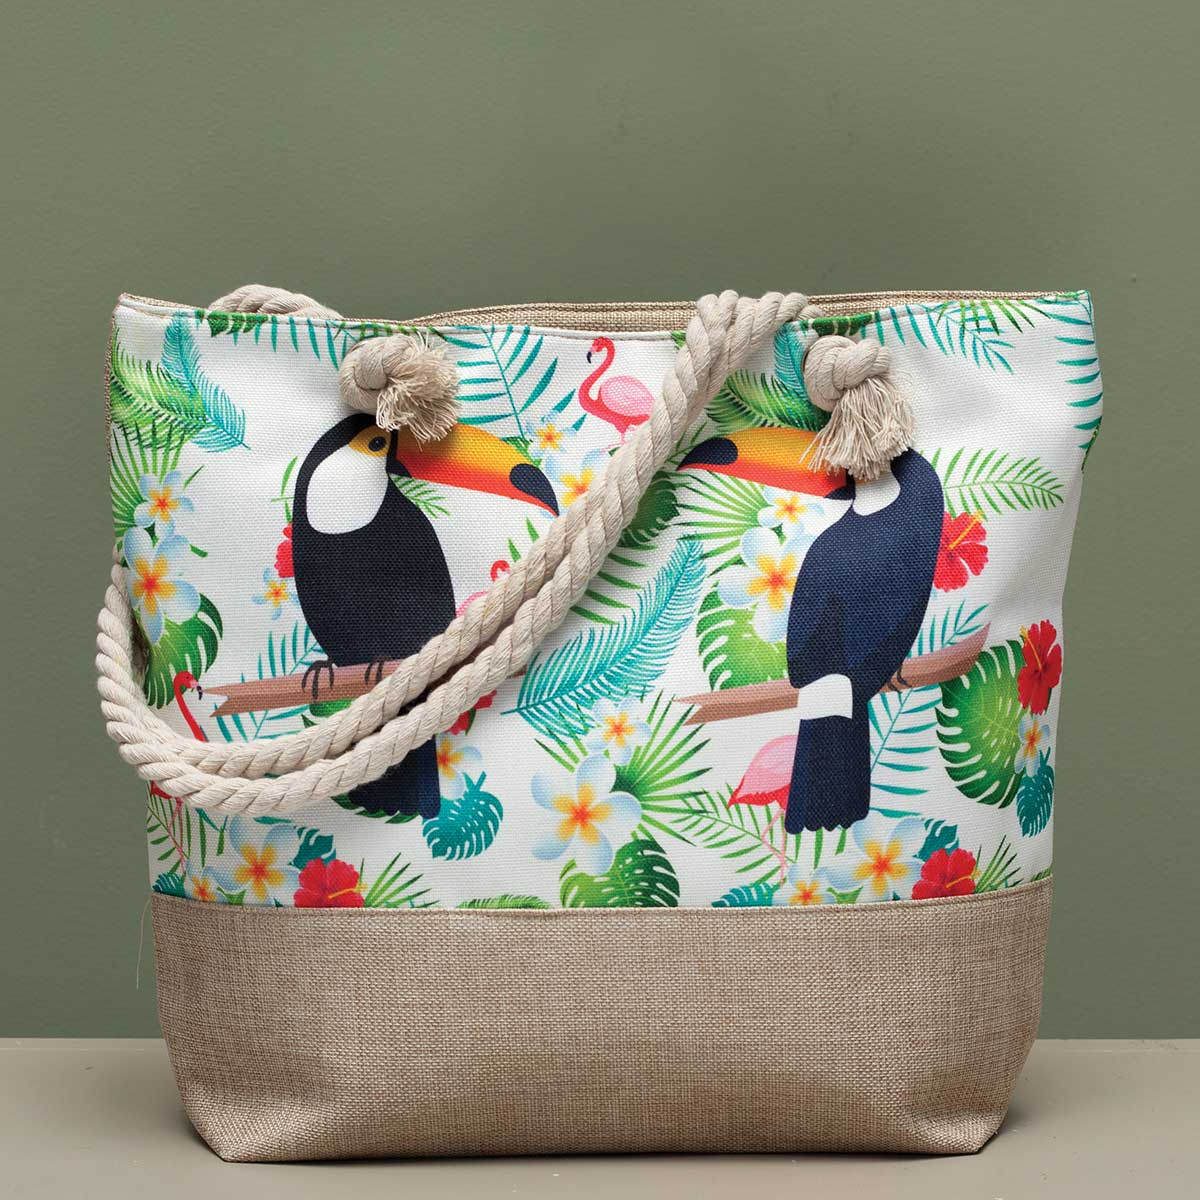 "Toucan Tapestry Bag 17.5""x5""x14"" with 10"" Shoulder Strap and Zip"